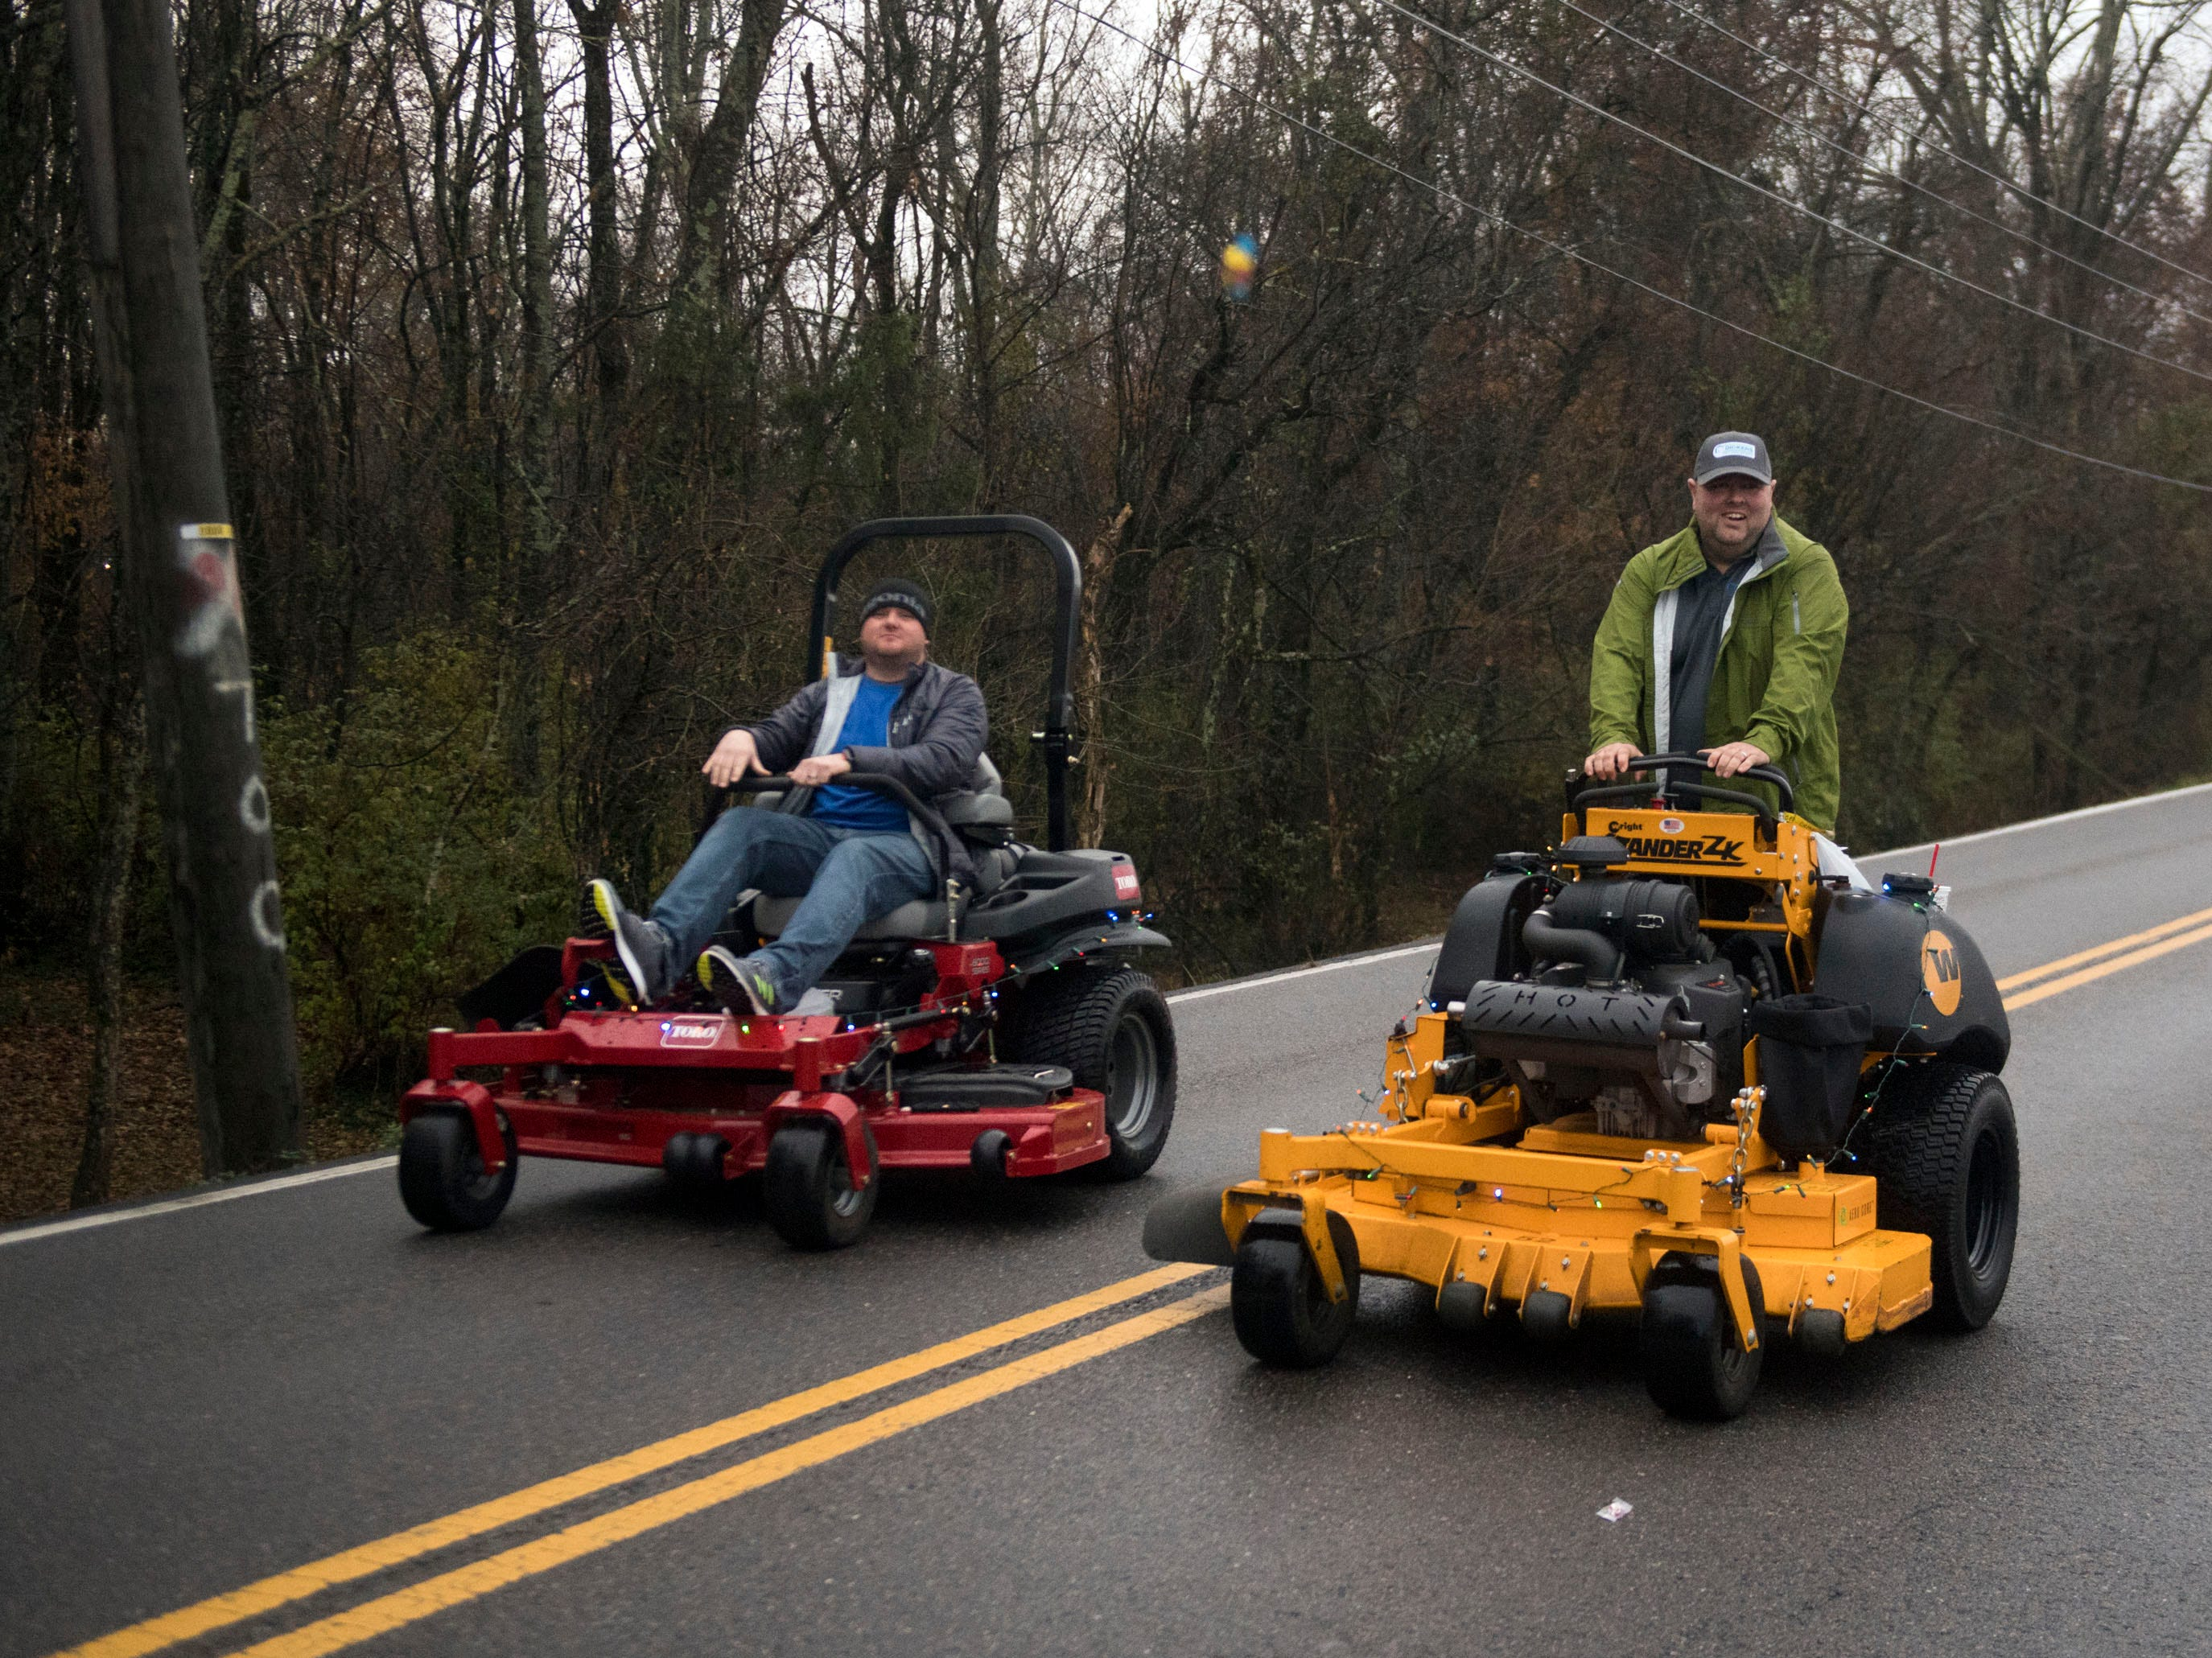 Dickens Turf and Landscape Supply participating in the Powell Lions Club Christmas Parade on Saturday, December 1, 2018.